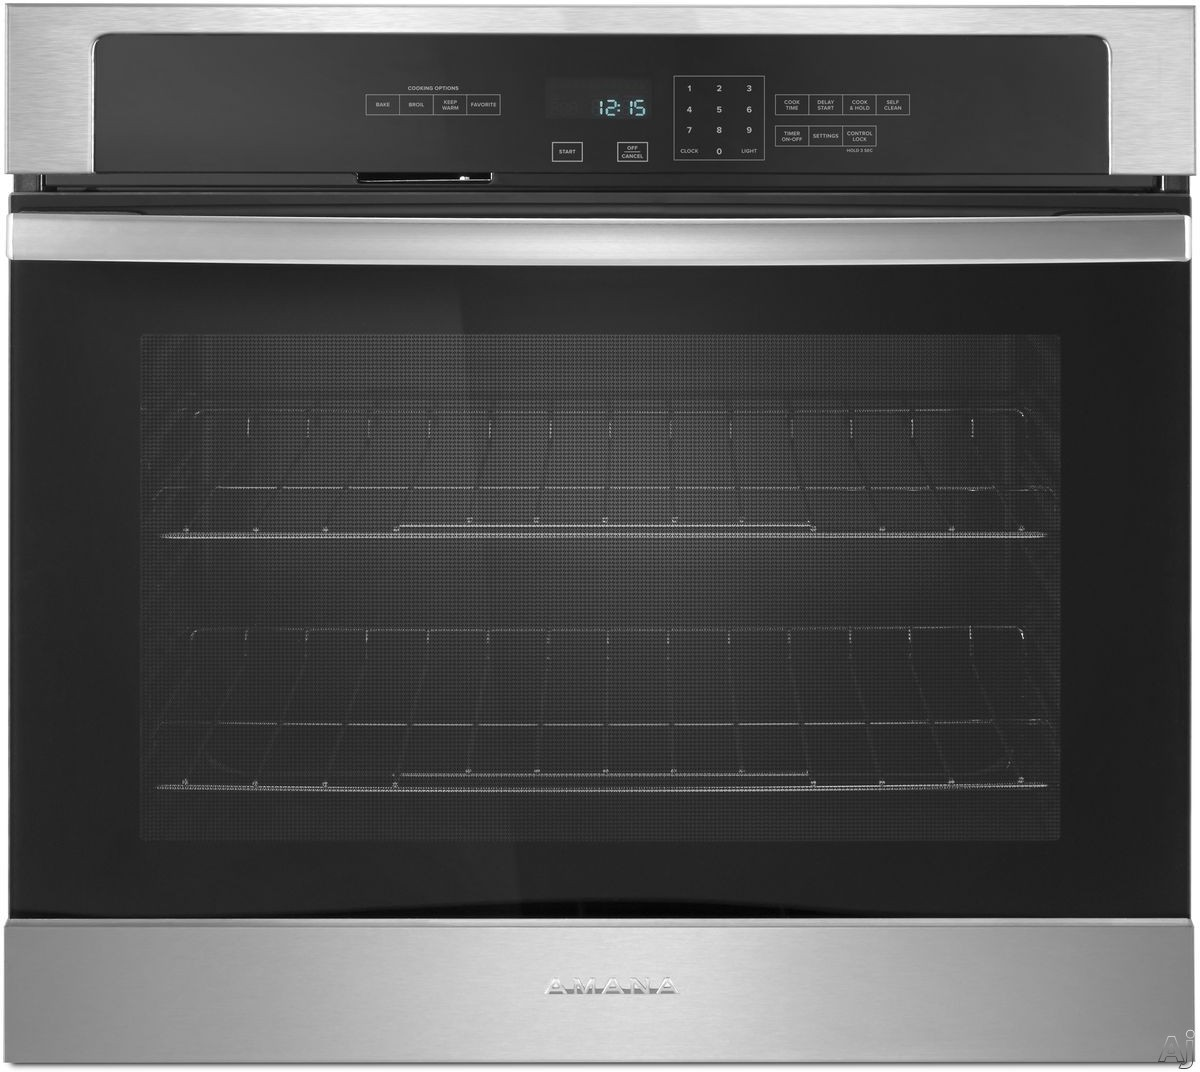 Picture of Amana AWO6313SF 30 Inch Single Electric Wall Oven with 5 cu ft of Capacity Temp Assure Cooking System Hidden Bake Element Incandescent Lighting Fit System Self-Cleaning ADA Compliant and Sabbath Mode